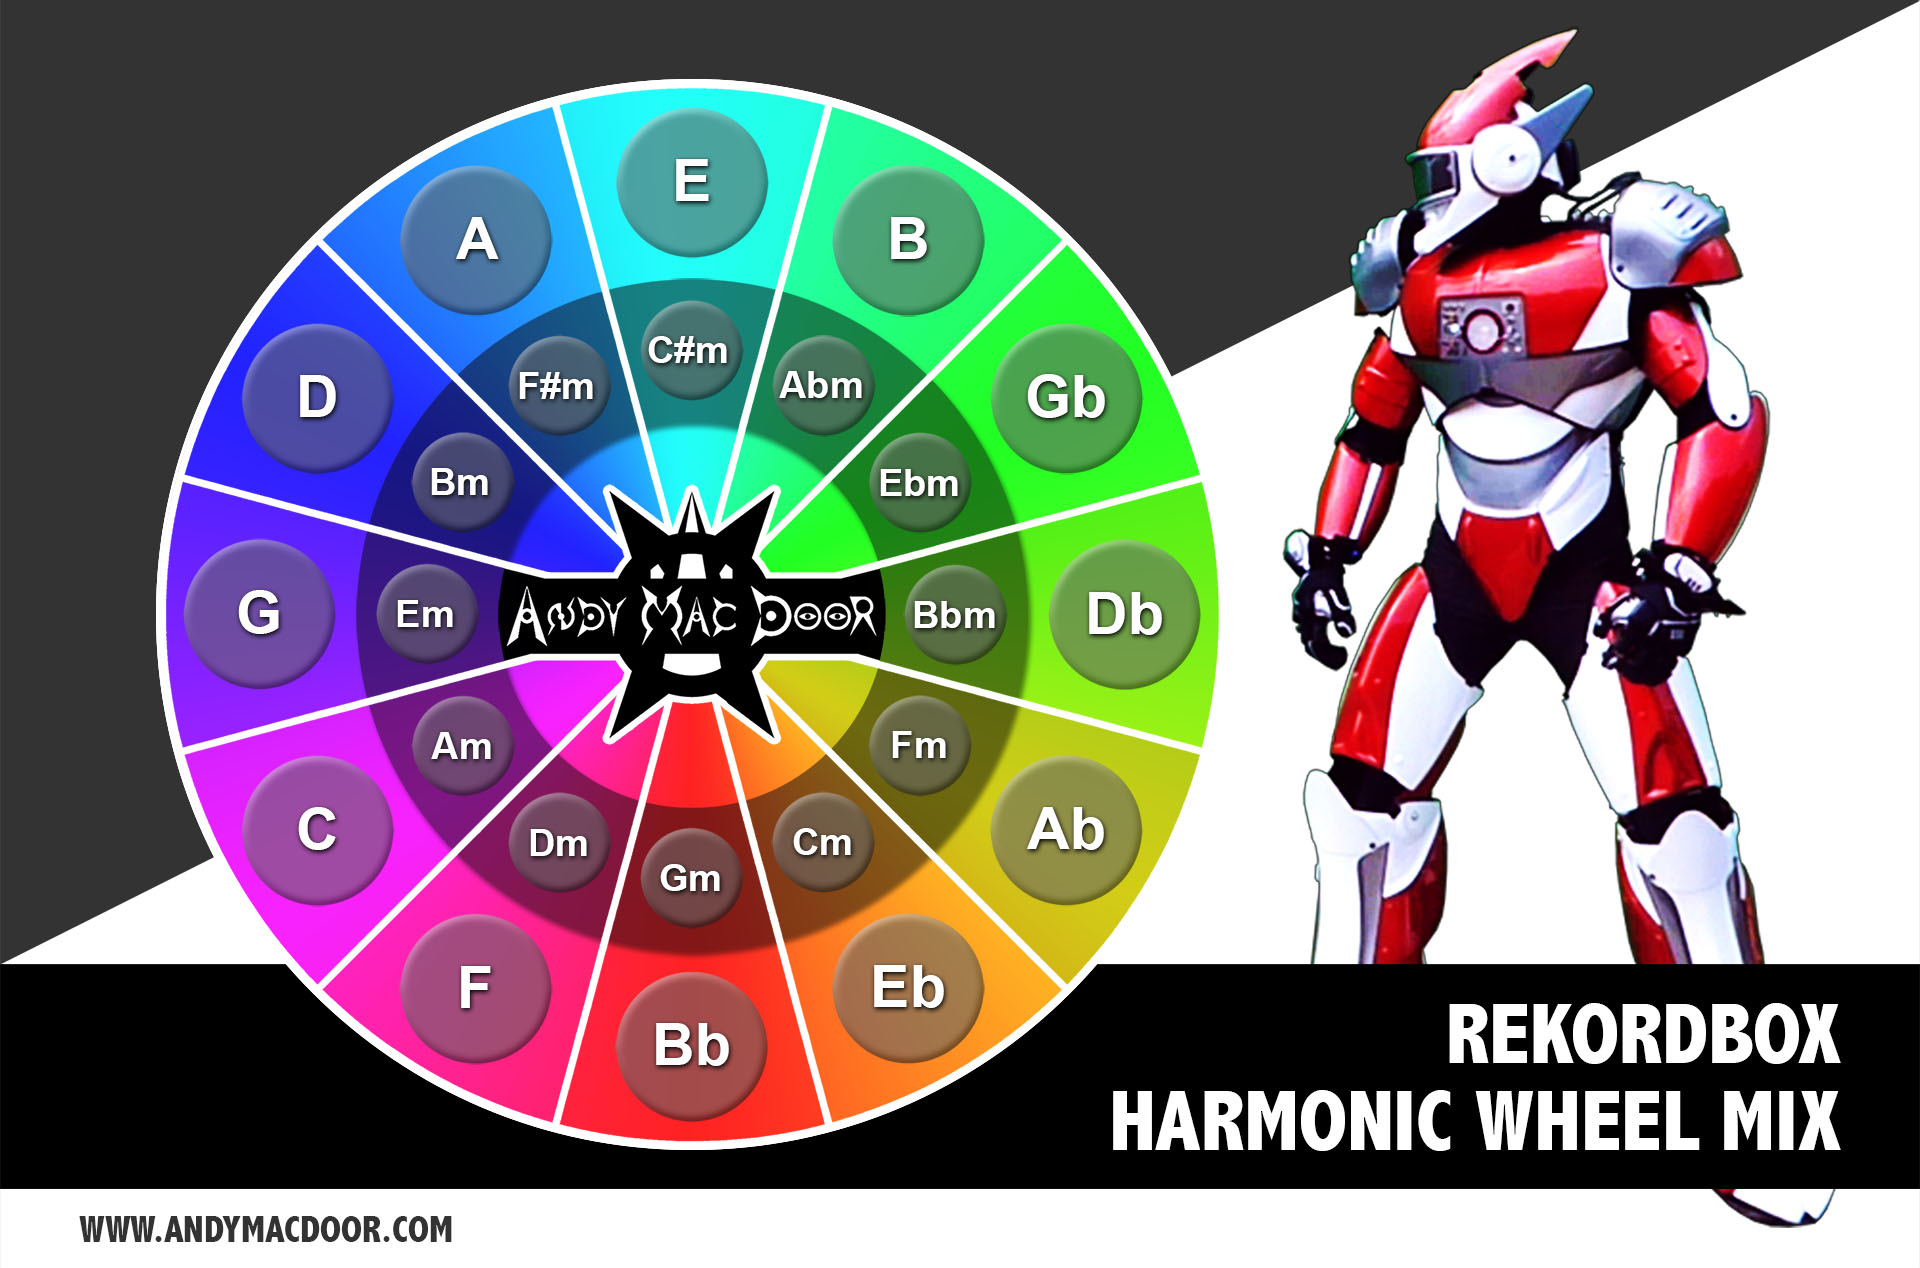 REKORDBOX - Harmonic mix wheel schema - Camelot - by Andy Mac Door